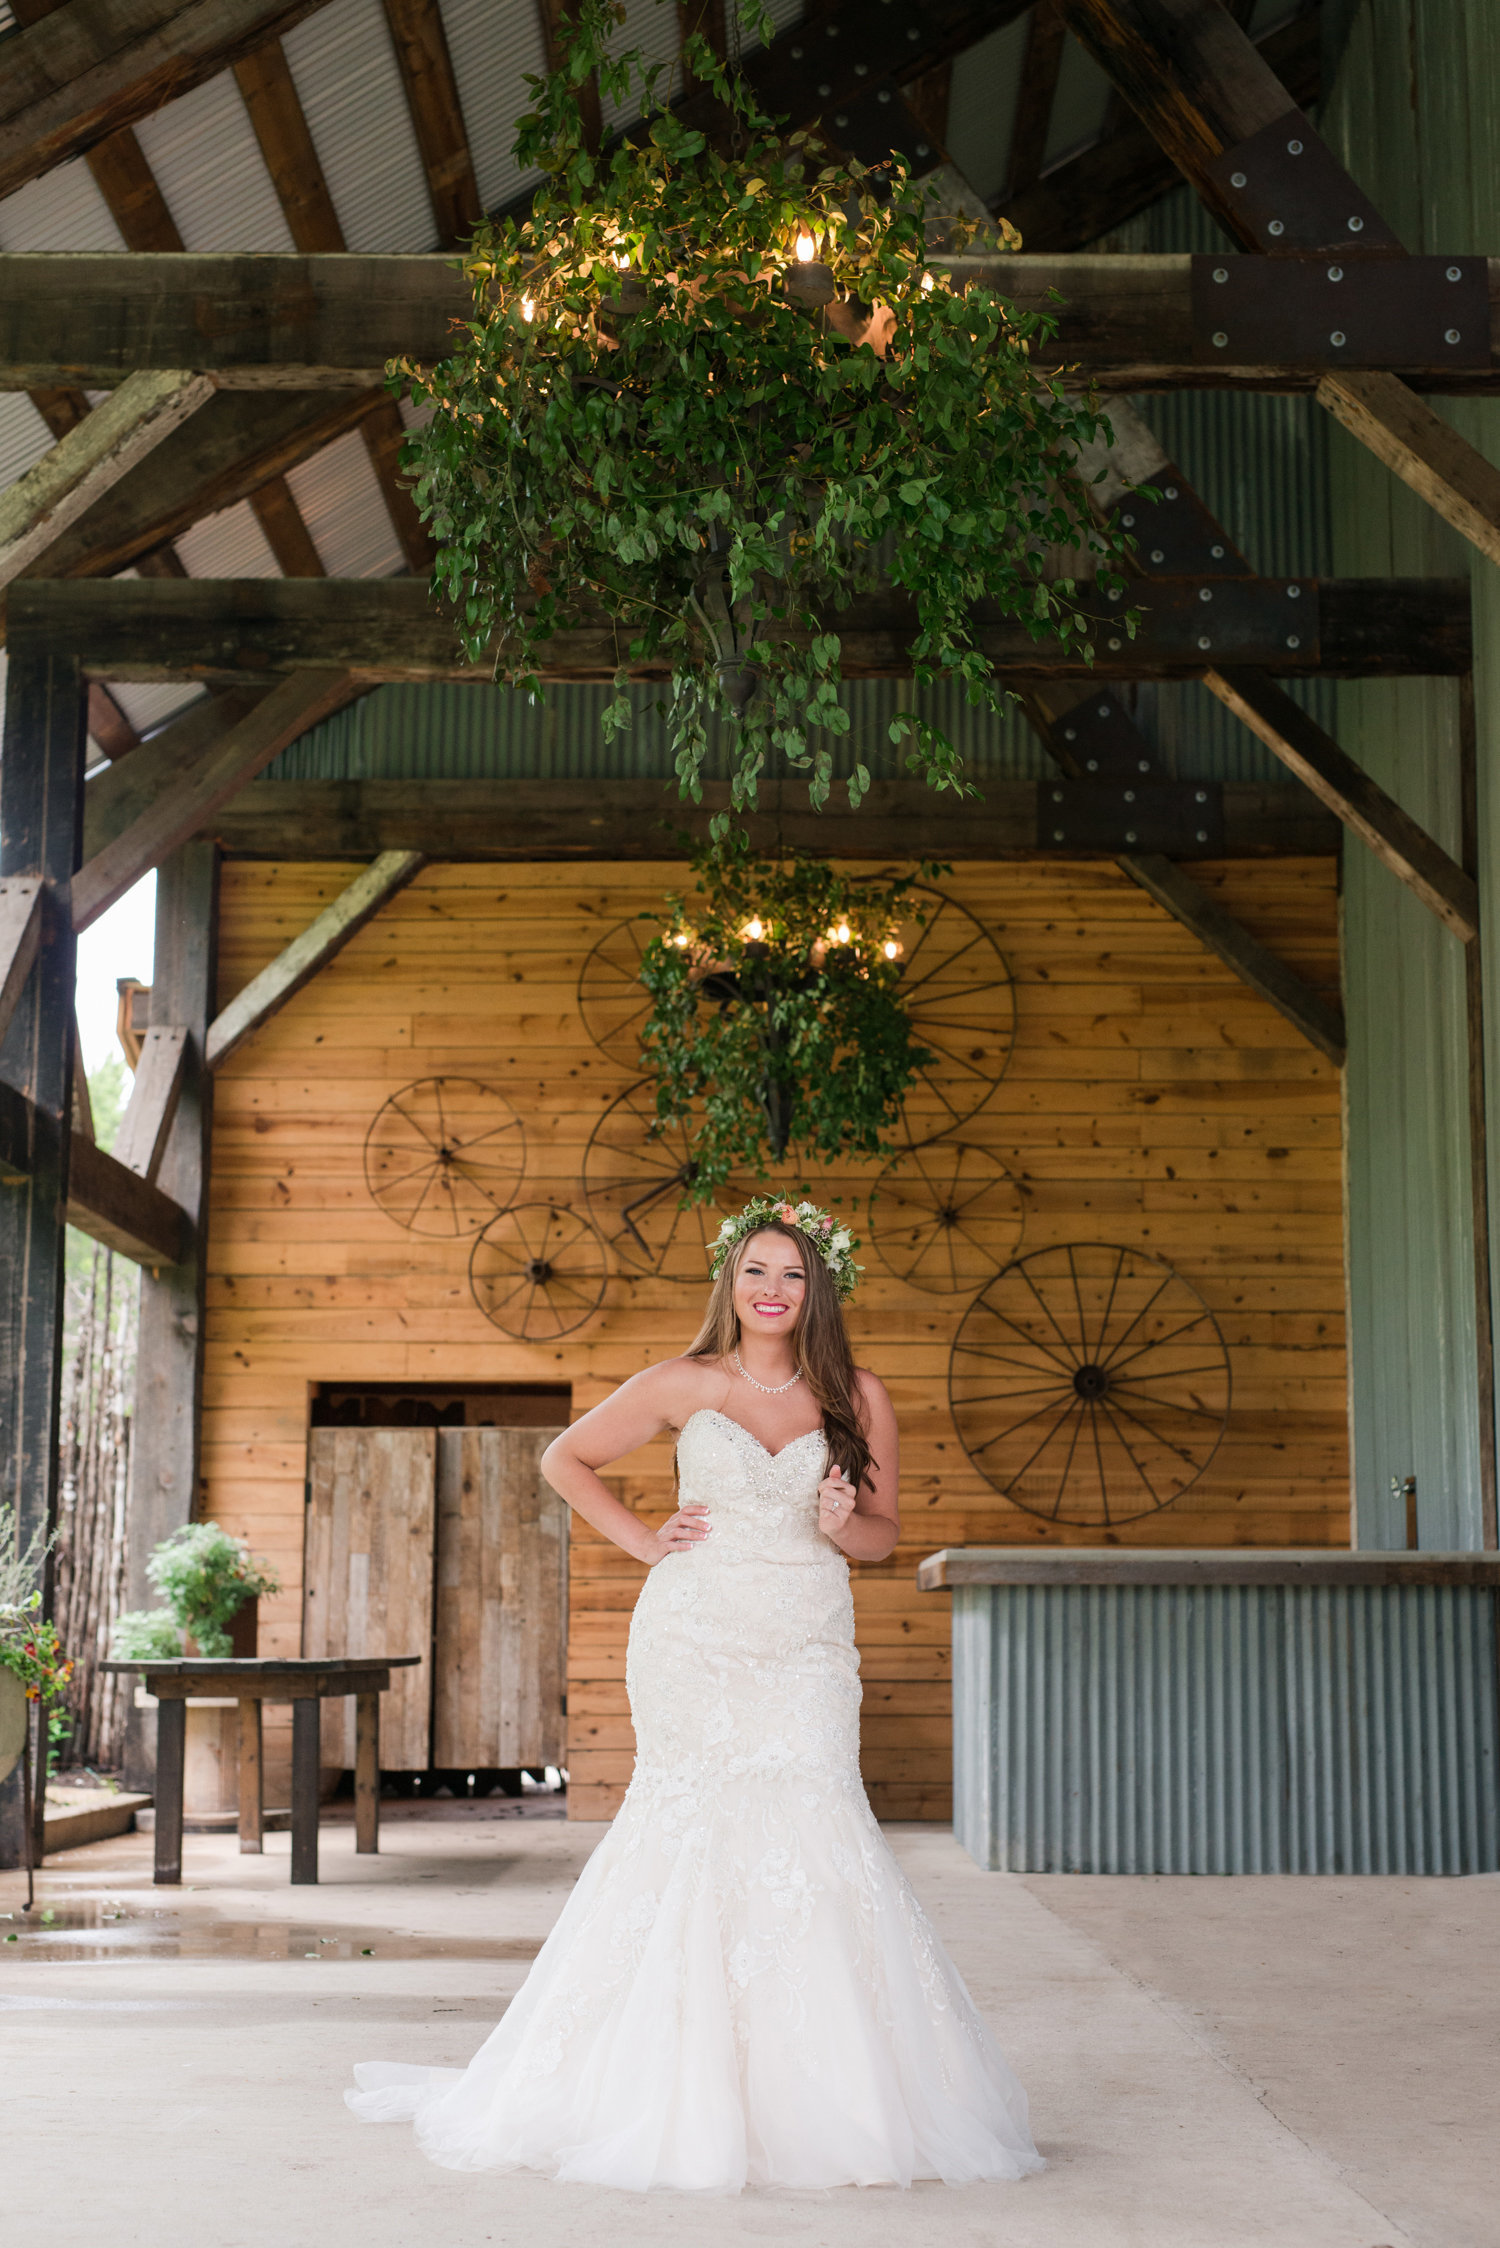 Bride laughs in pink flower crown with wagon wheels behind her at The Creek Haus in Dripping Springs, TX